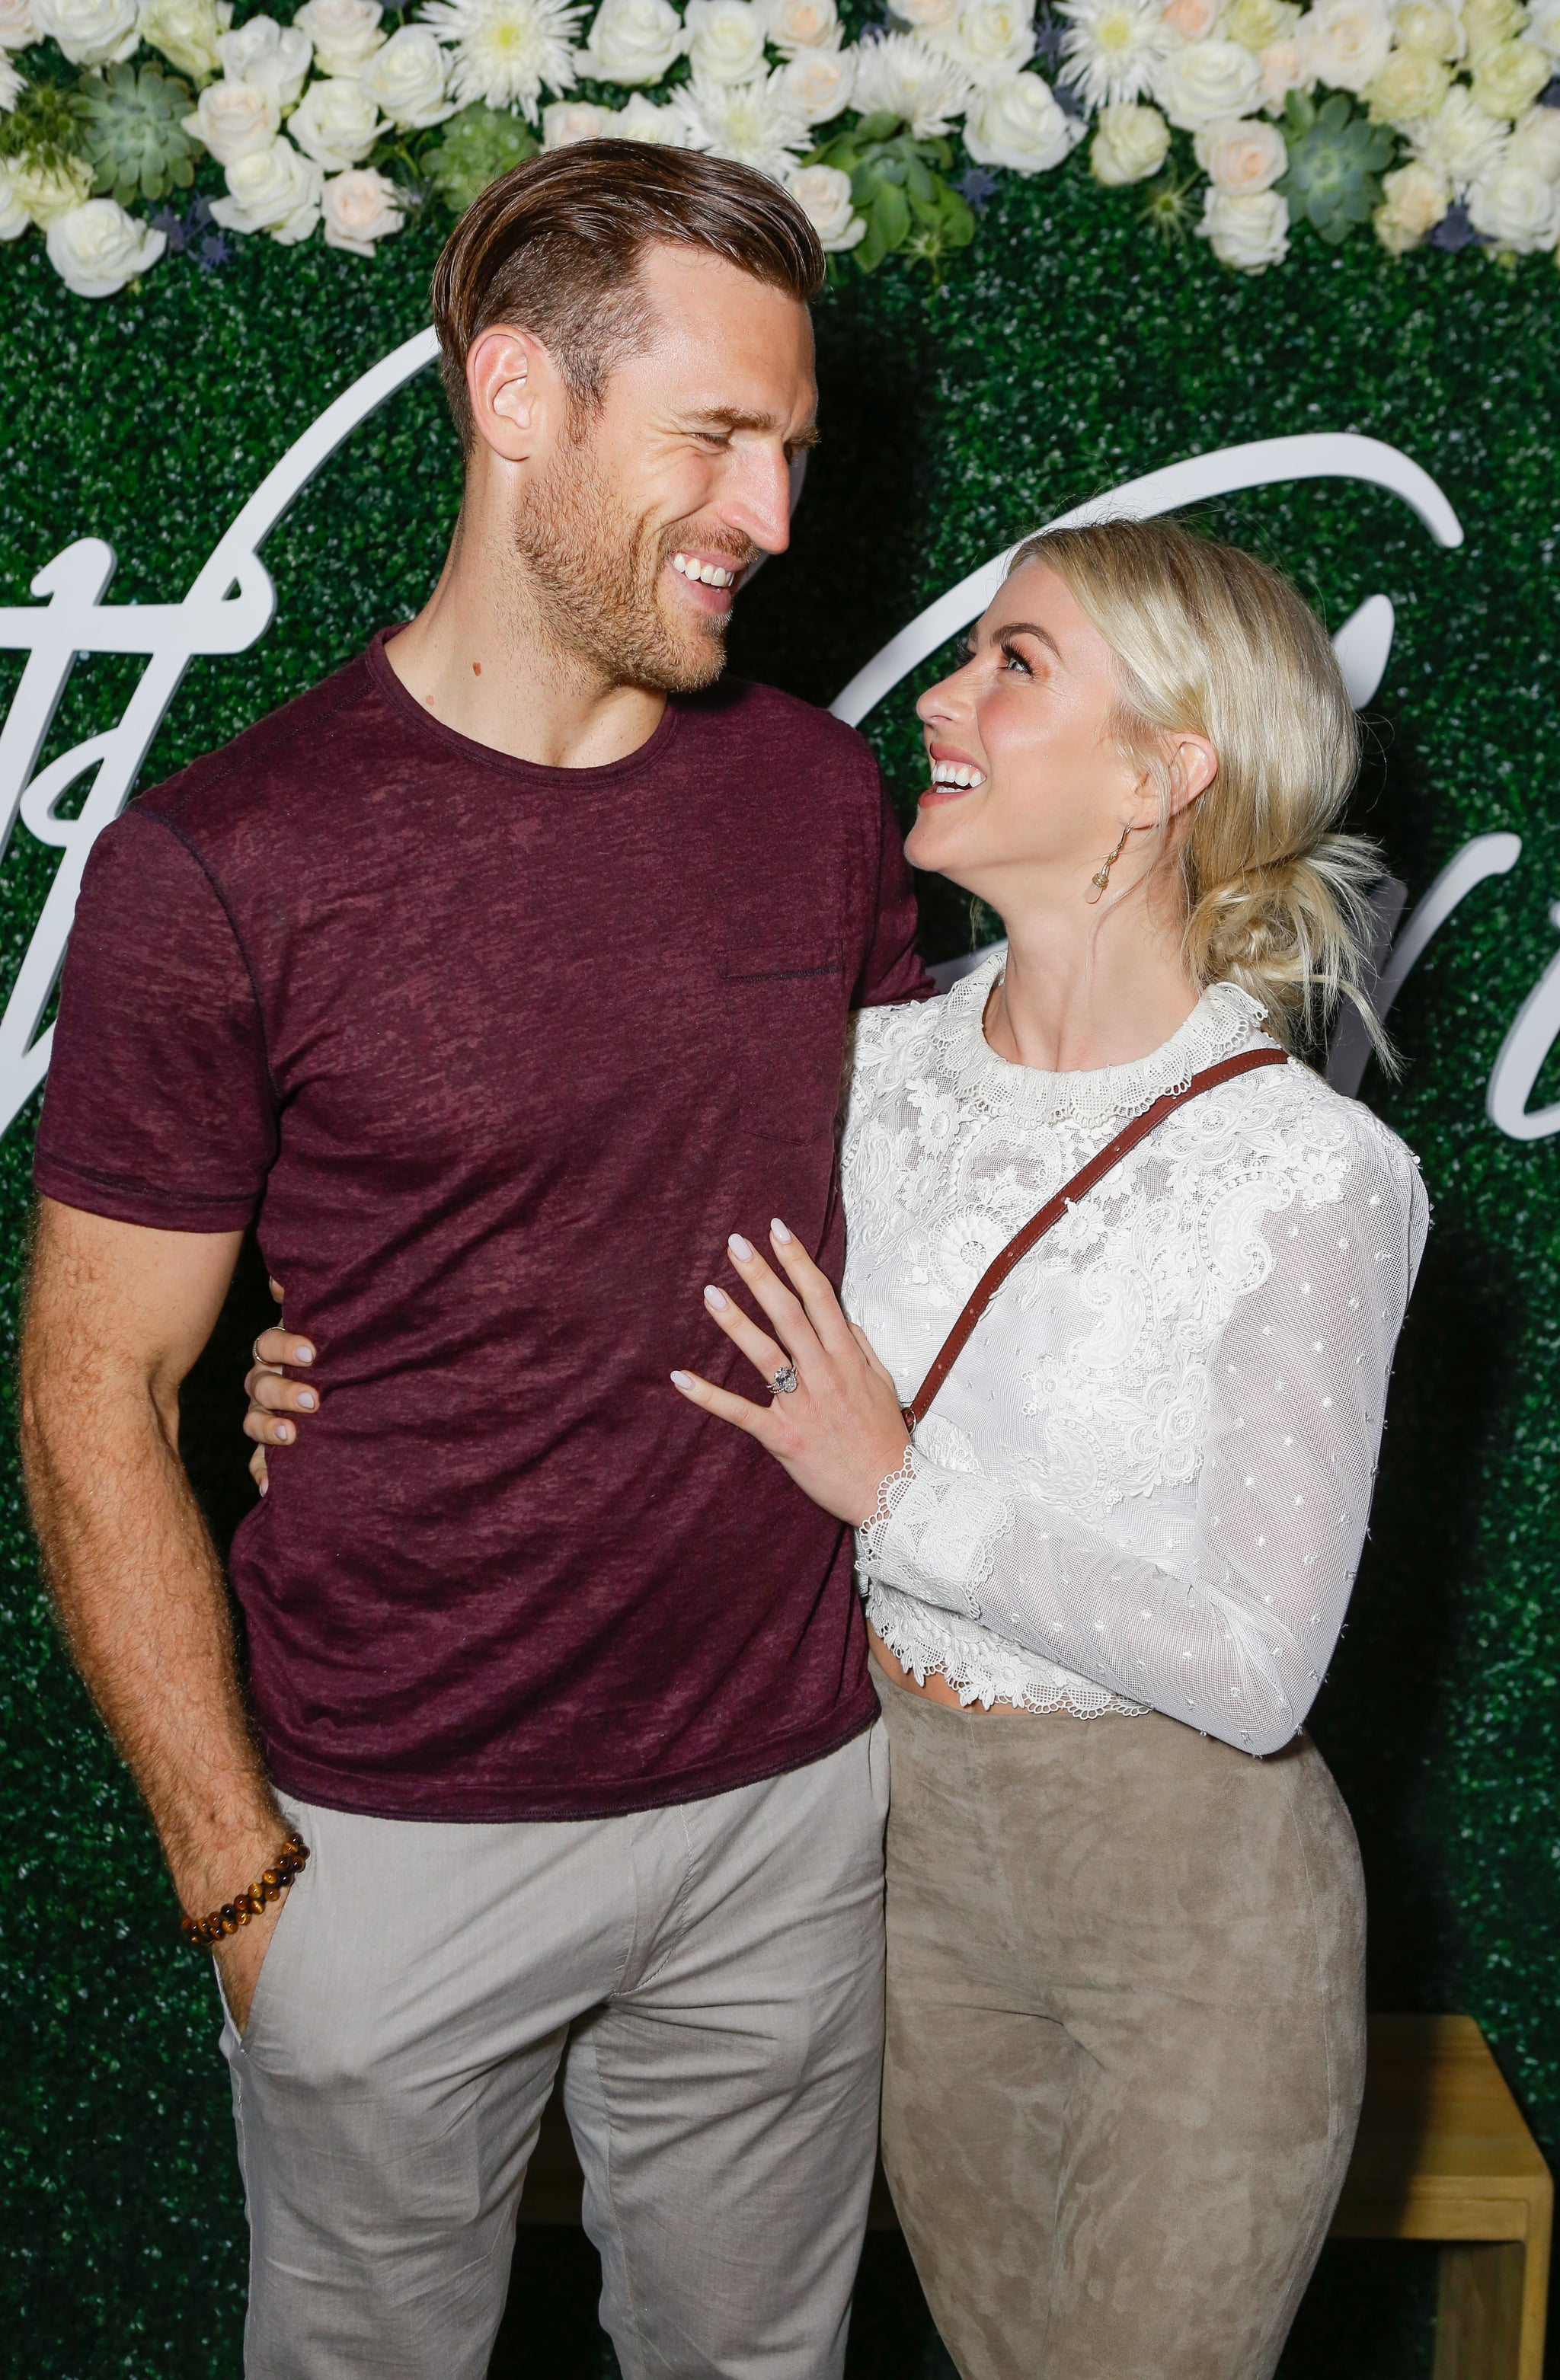 LOS ANGELES, CA - OCTOBER 12:  Brooks Laich and Julianne Hough attend the Paint & Sip & Help event to Benefit Children's Hospital Los Angeles hosted by The Grove on October 12, 2017 in Los Angeles, California.  (Photo by Tiffany Rose/Getty Images for Caruso)